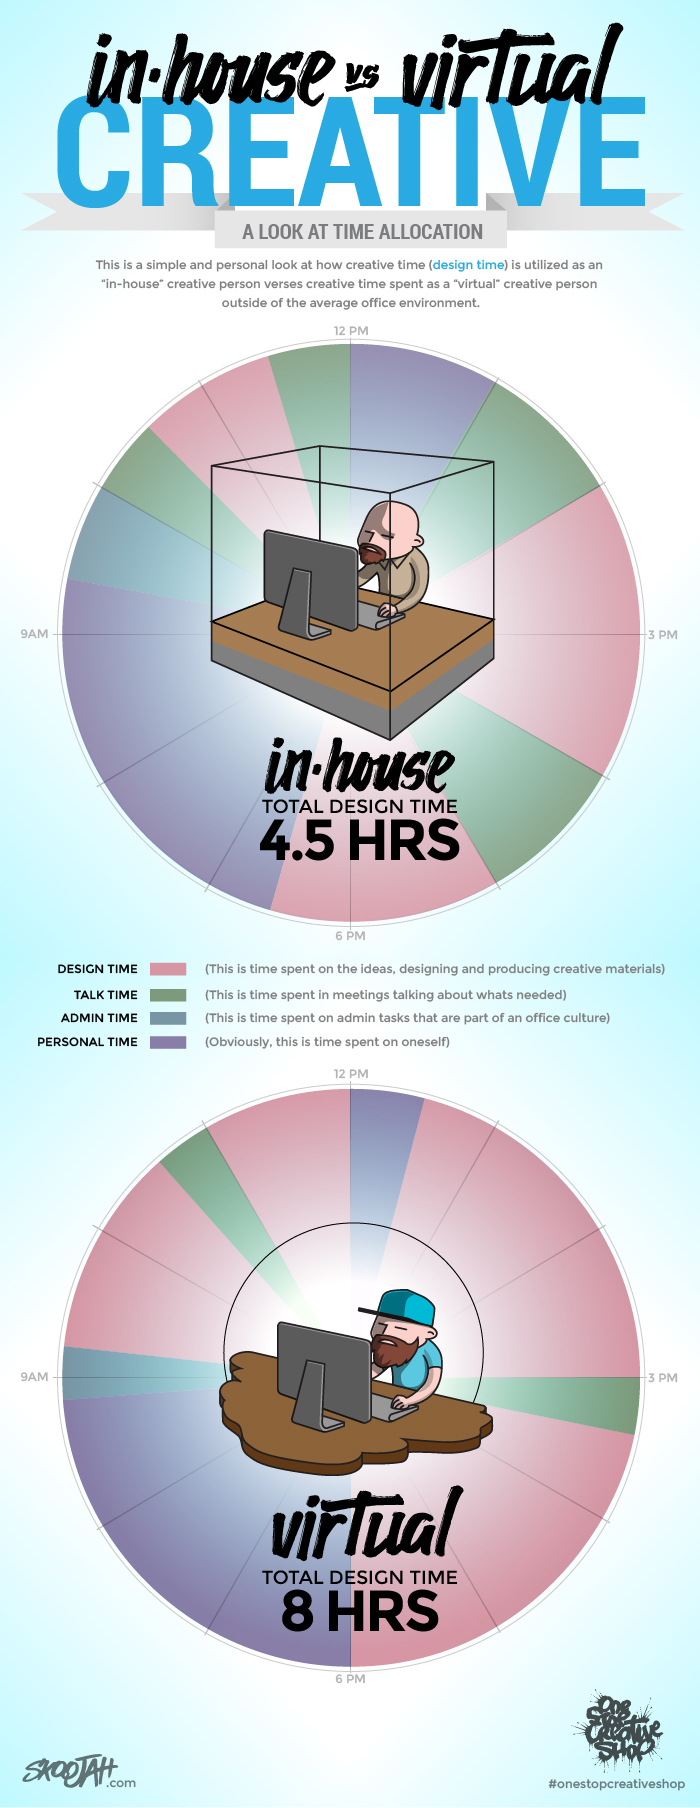 in-housevsvirtual_infographic-01